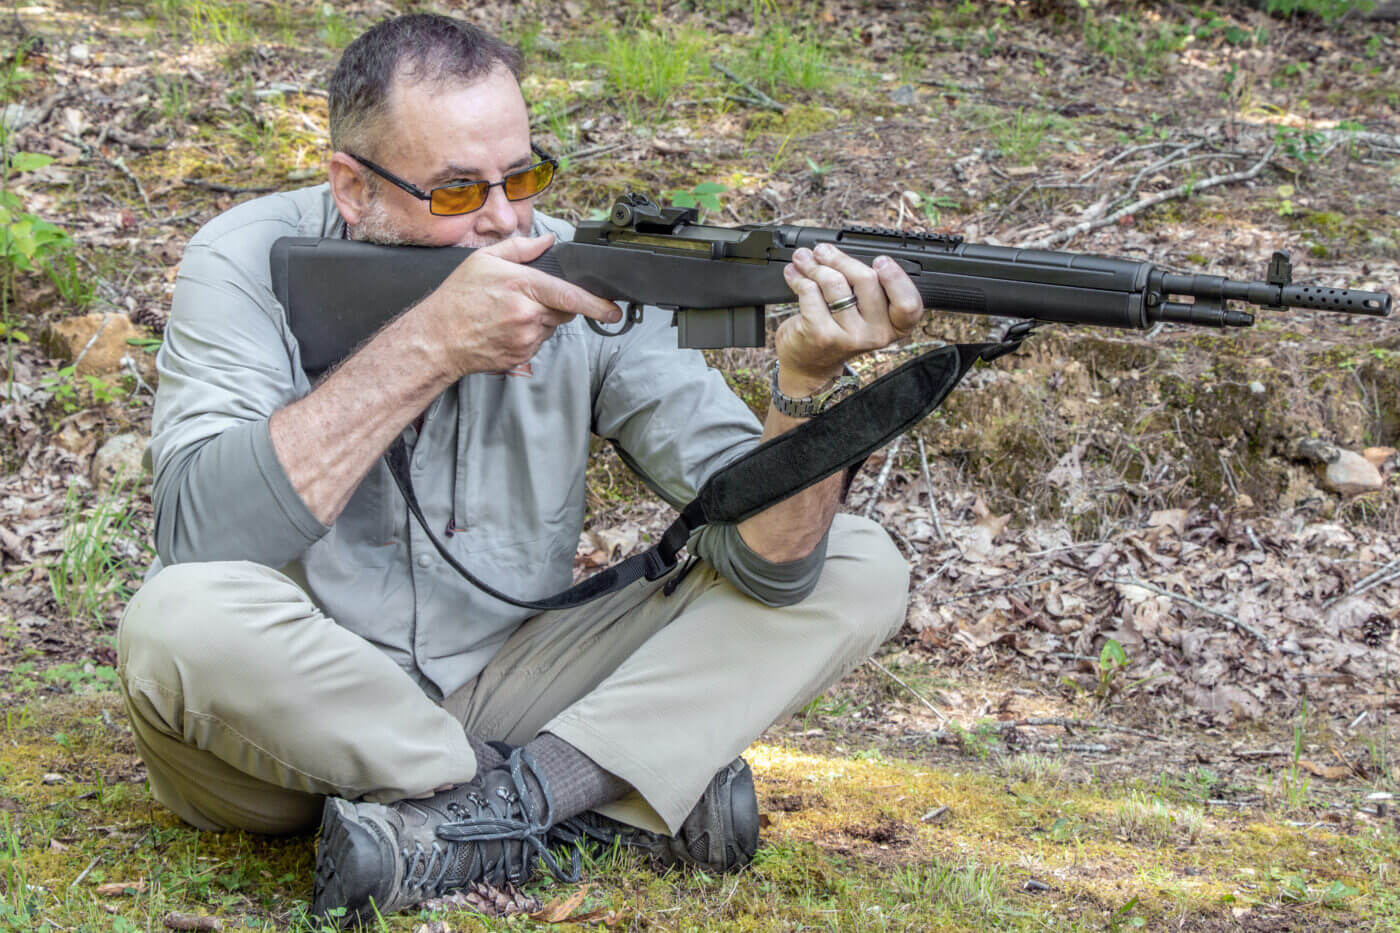 Man demonstrates how to shoot a rifle while sitting